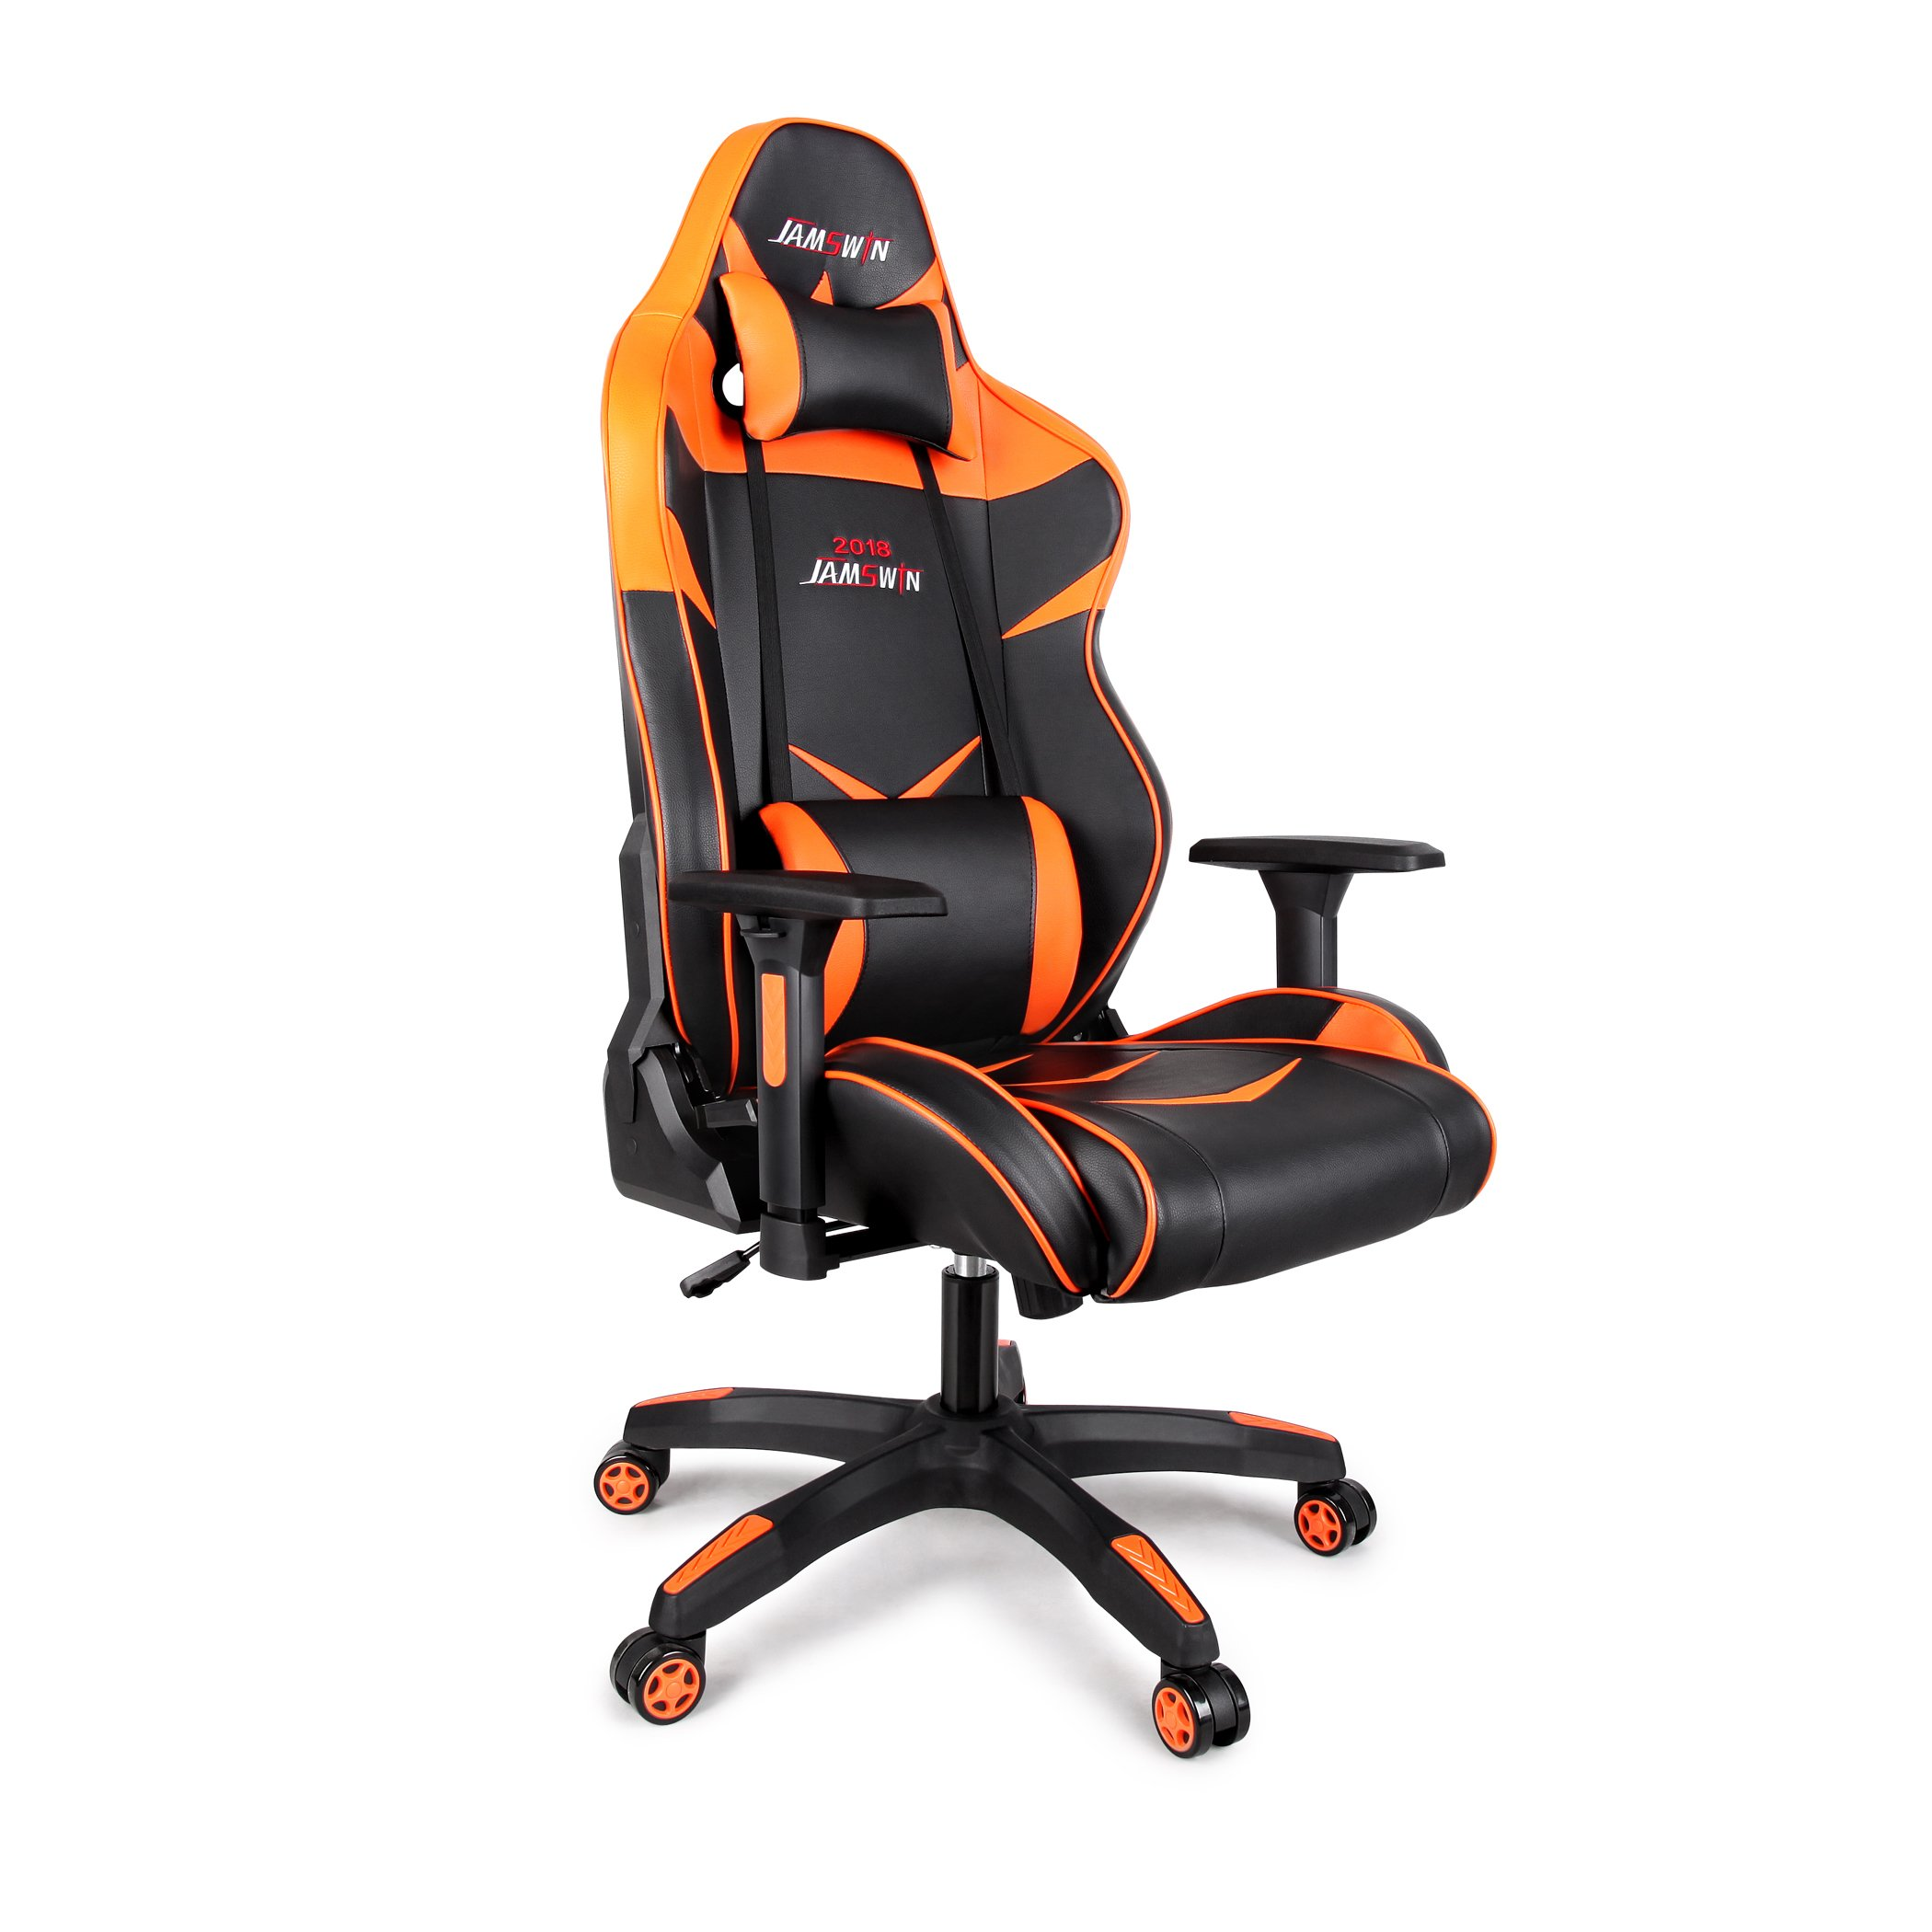 Jamswin Gaming Chair Ergonomic Large Size High Back Adjustable PU Leather Video Game Chairs Orange